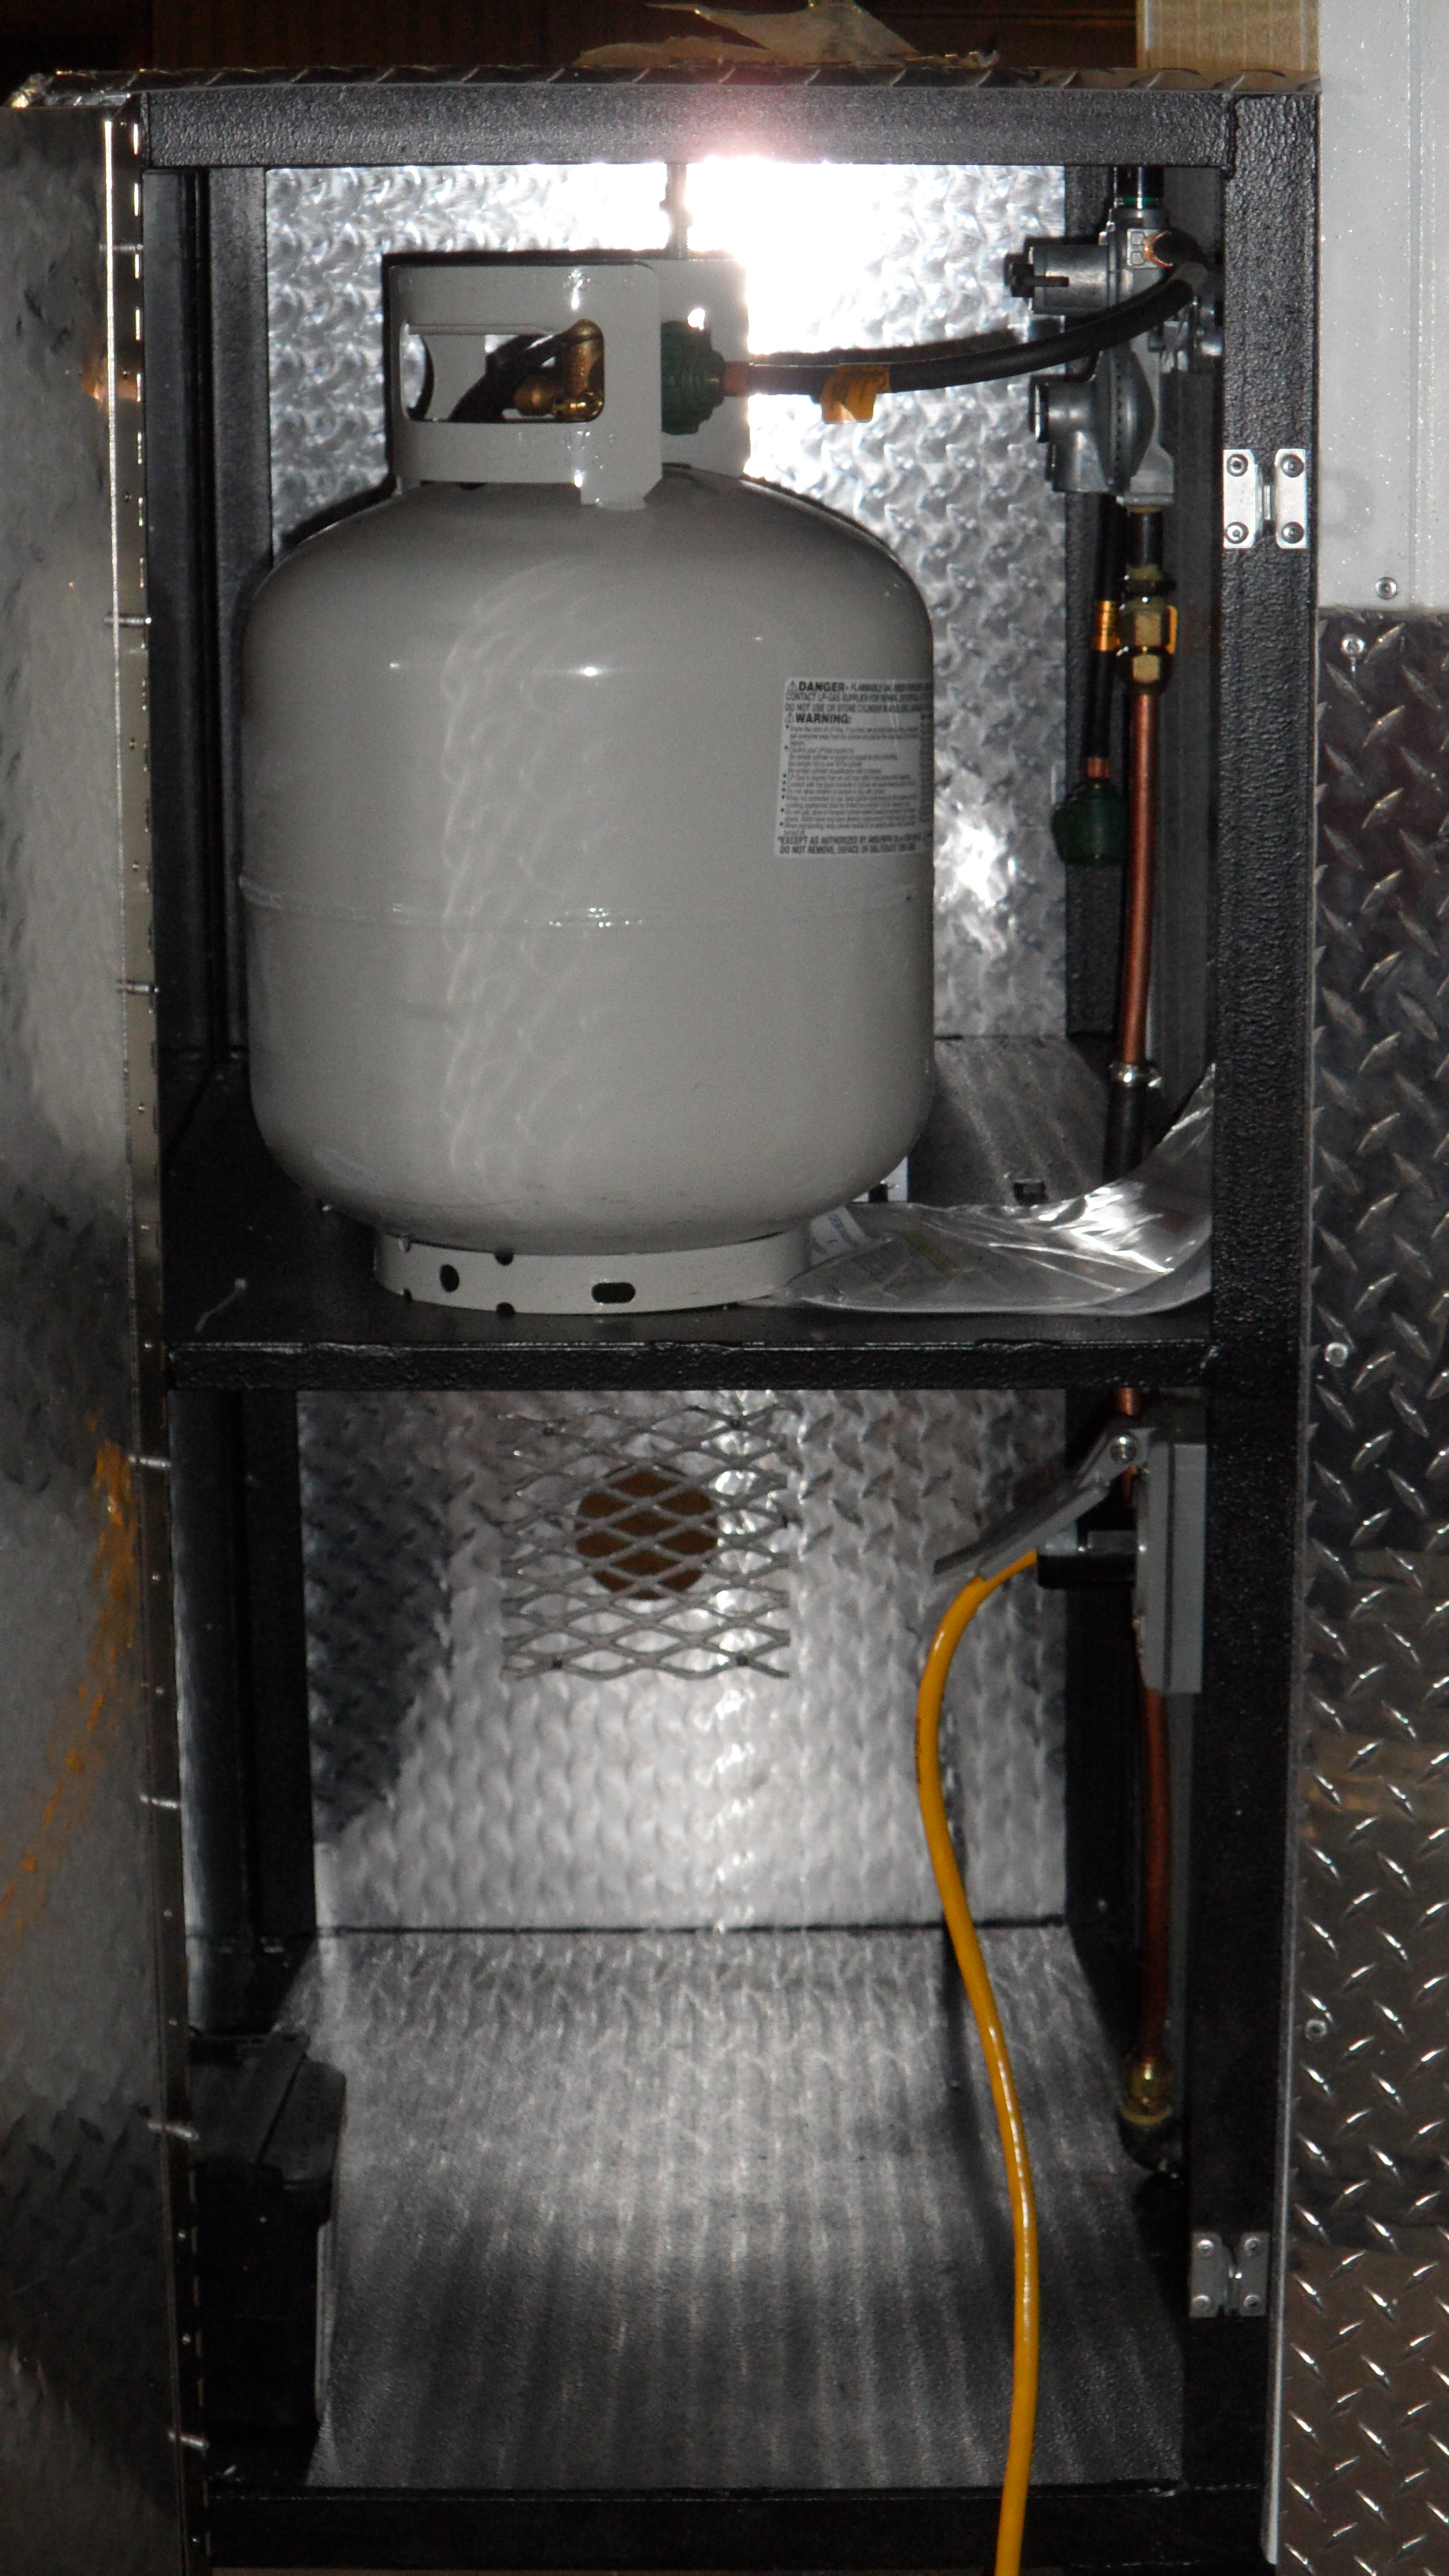 Mobile Bed Bug Heat Treatment Trailer Solves Bed Bug Problems Caused by Infested Returned